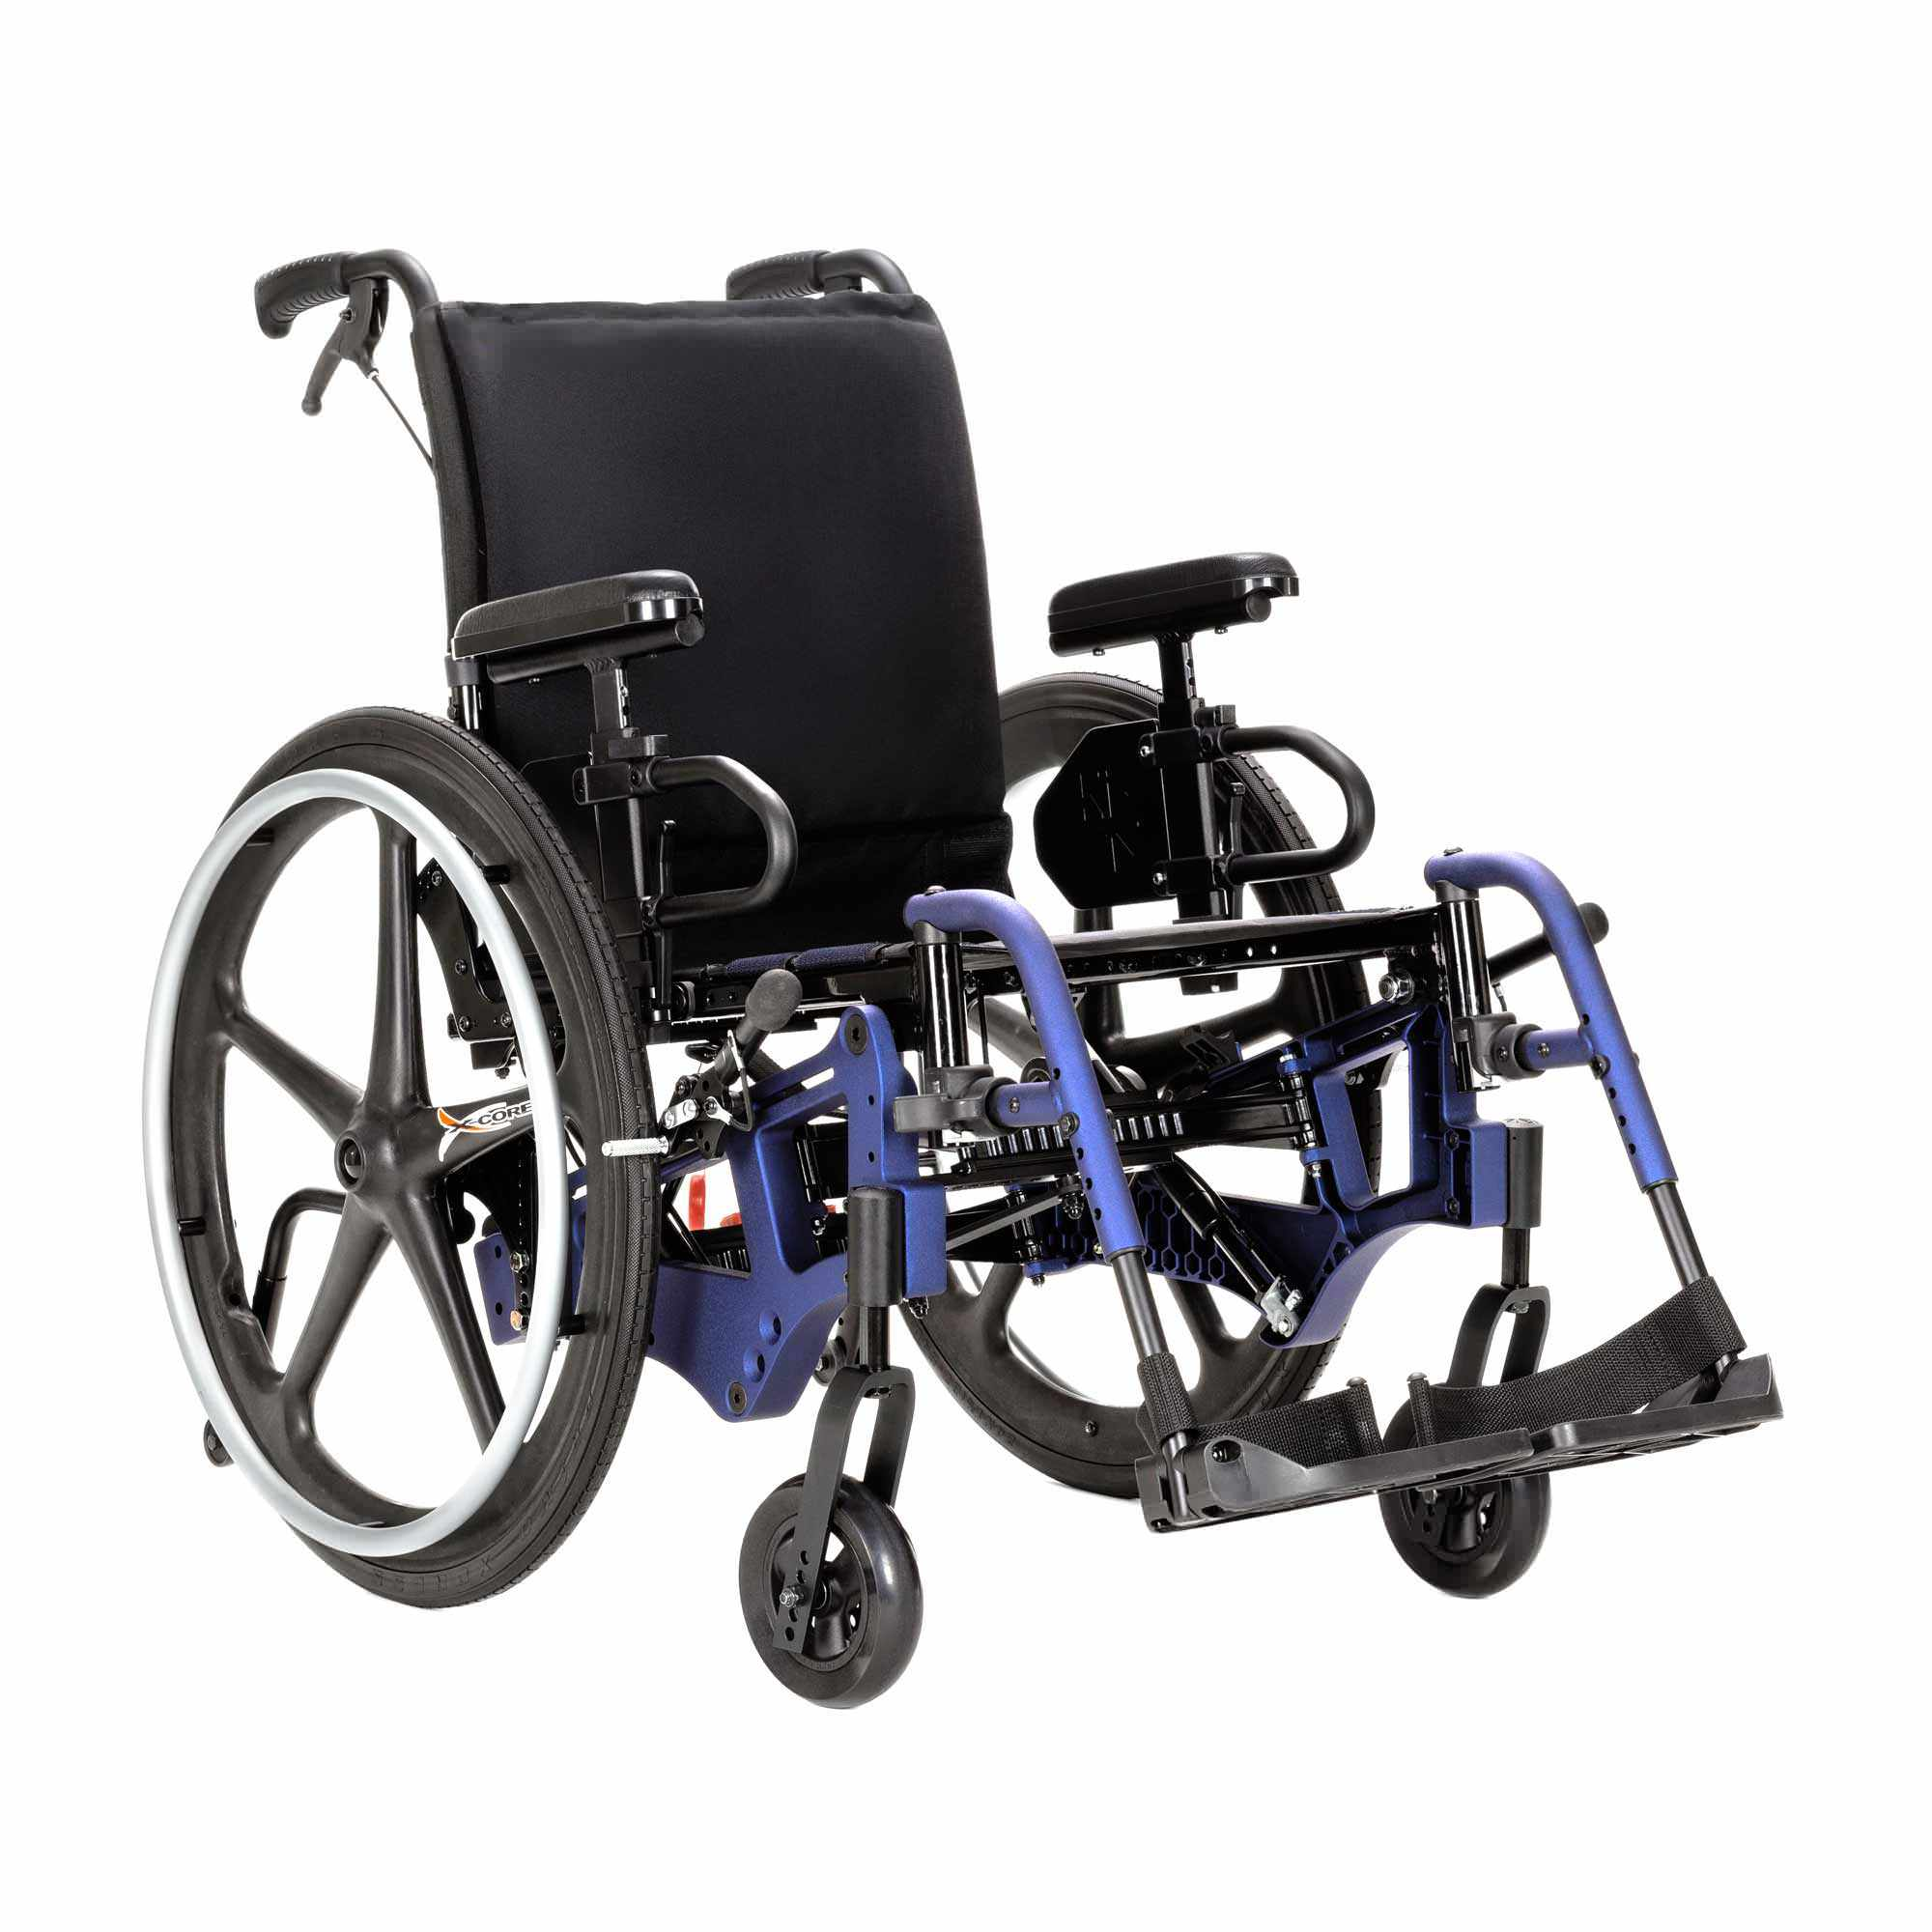 Ki mobility Liberty FT tilt wheelchair